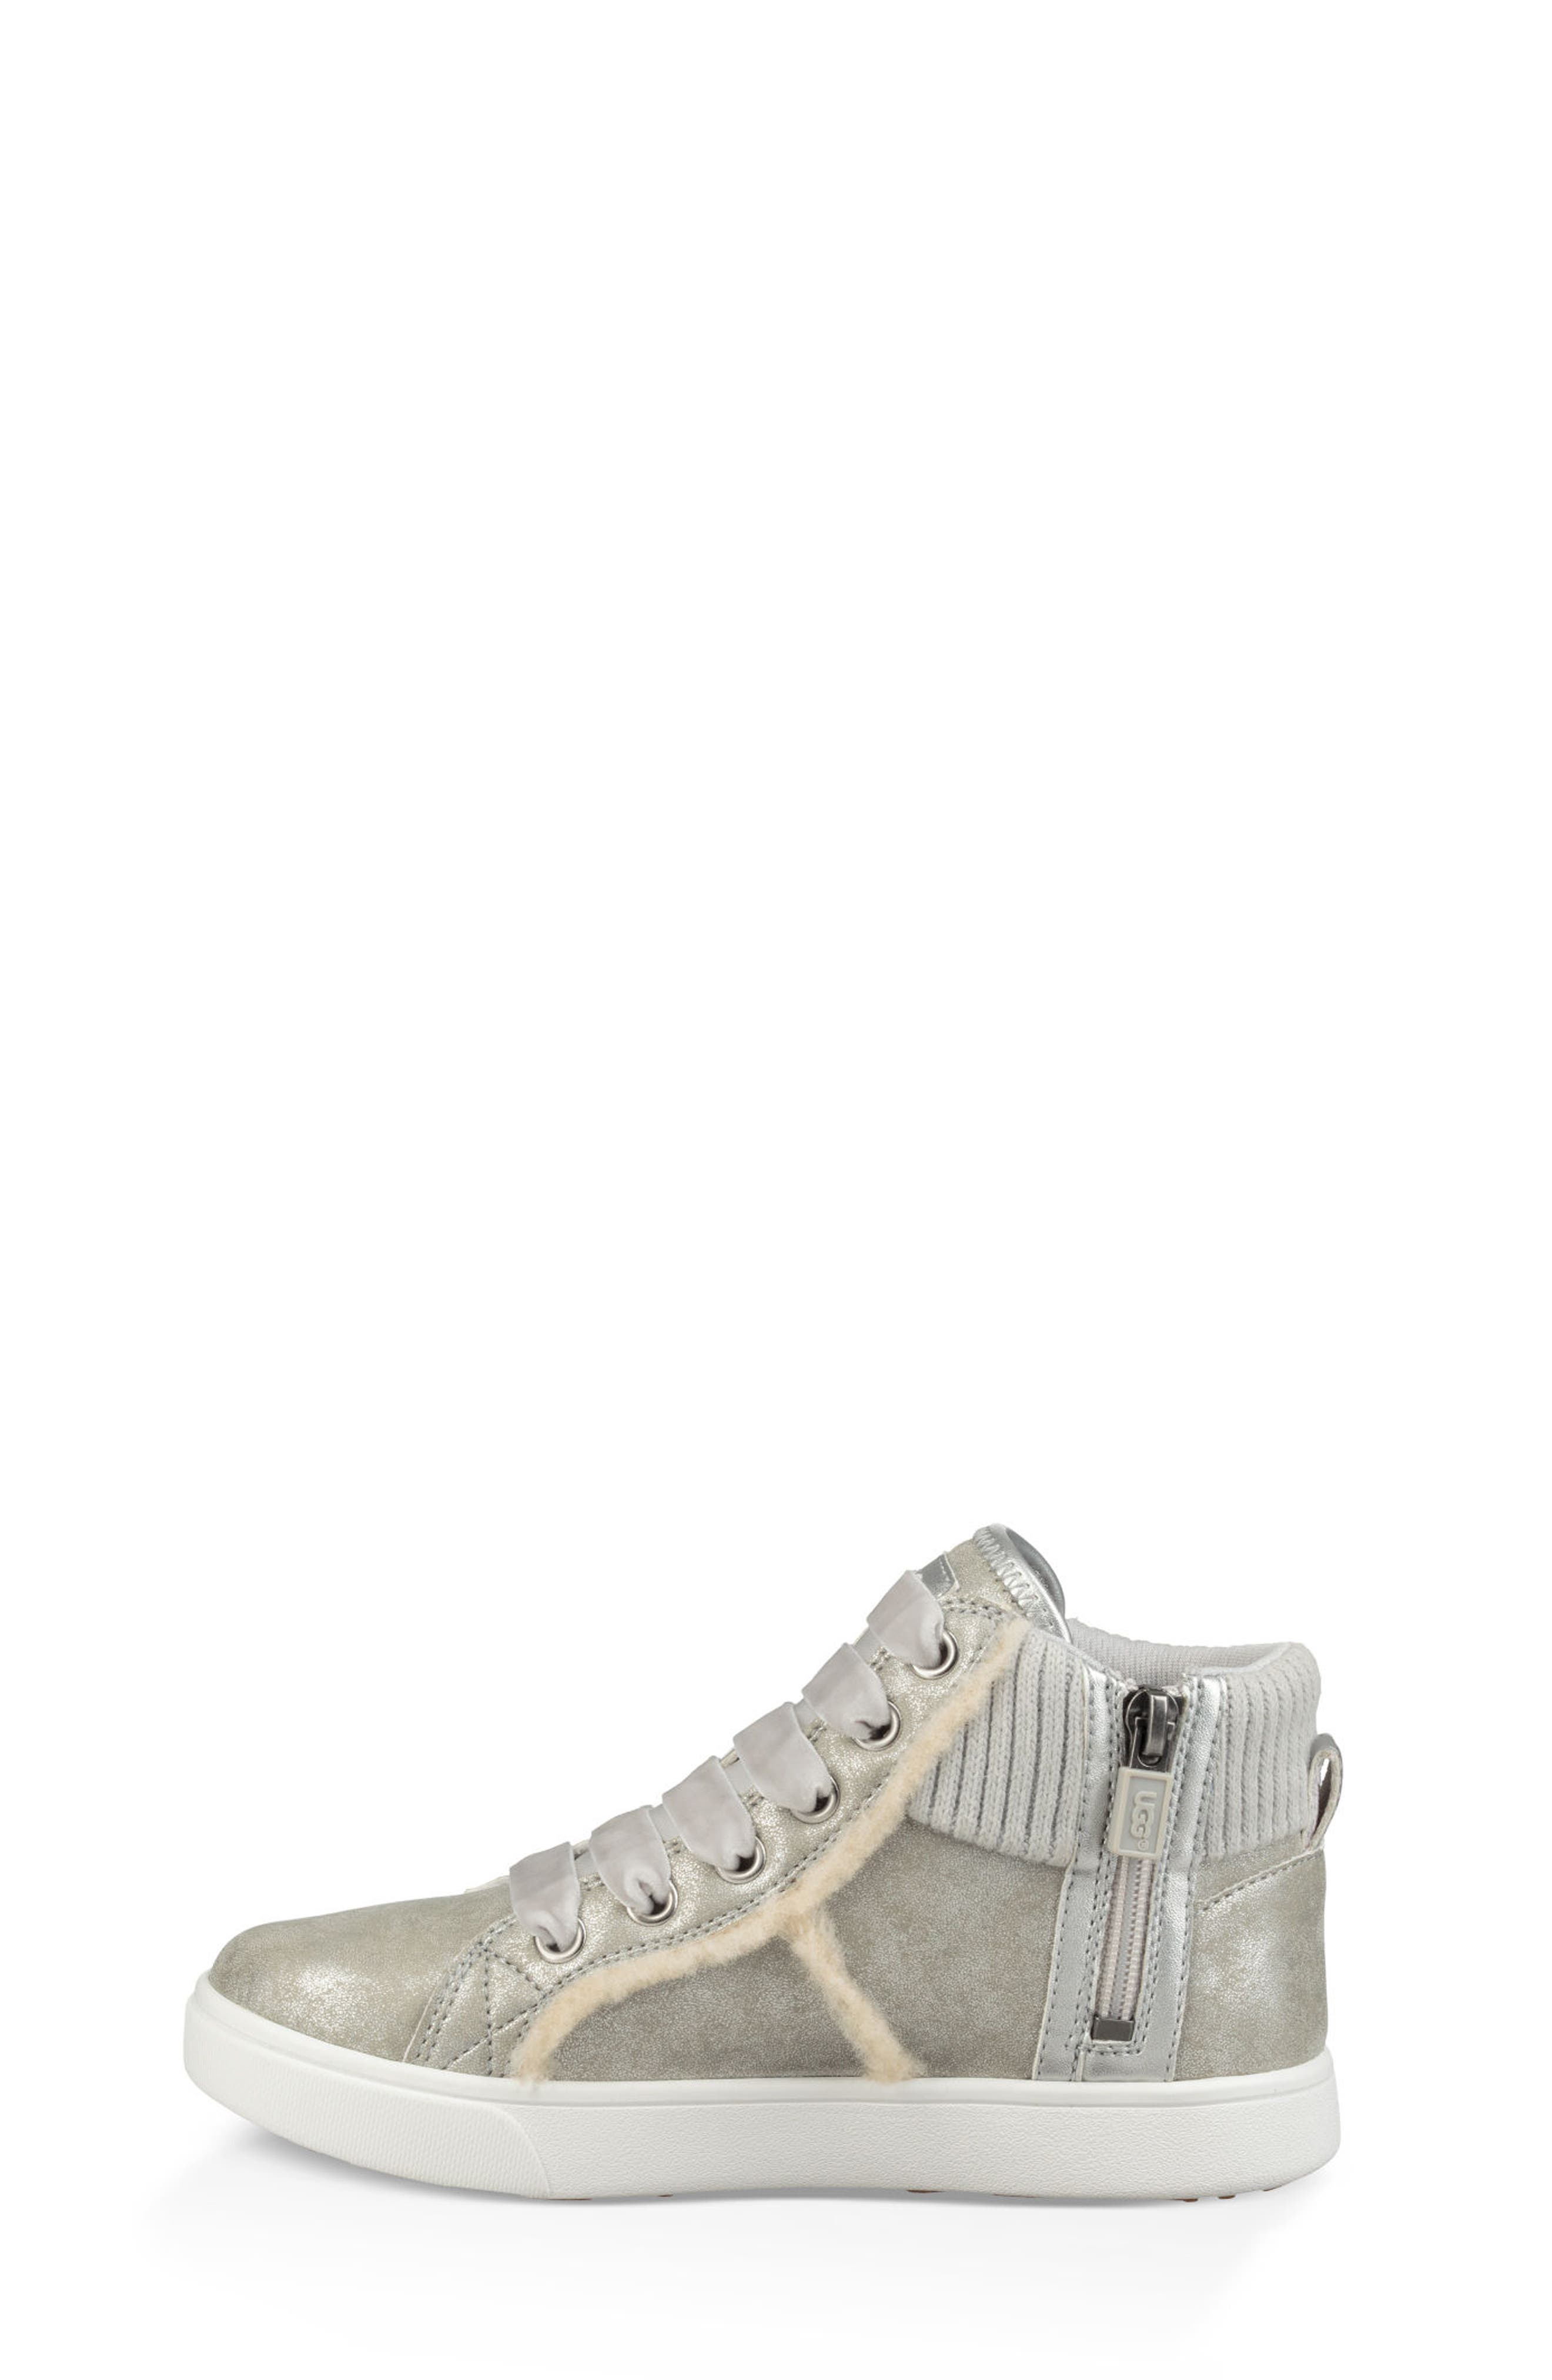 UGG<SUP>®</SUP>, Addie High Top Sneaker, Alternate thumbnail 5, color, SILVER